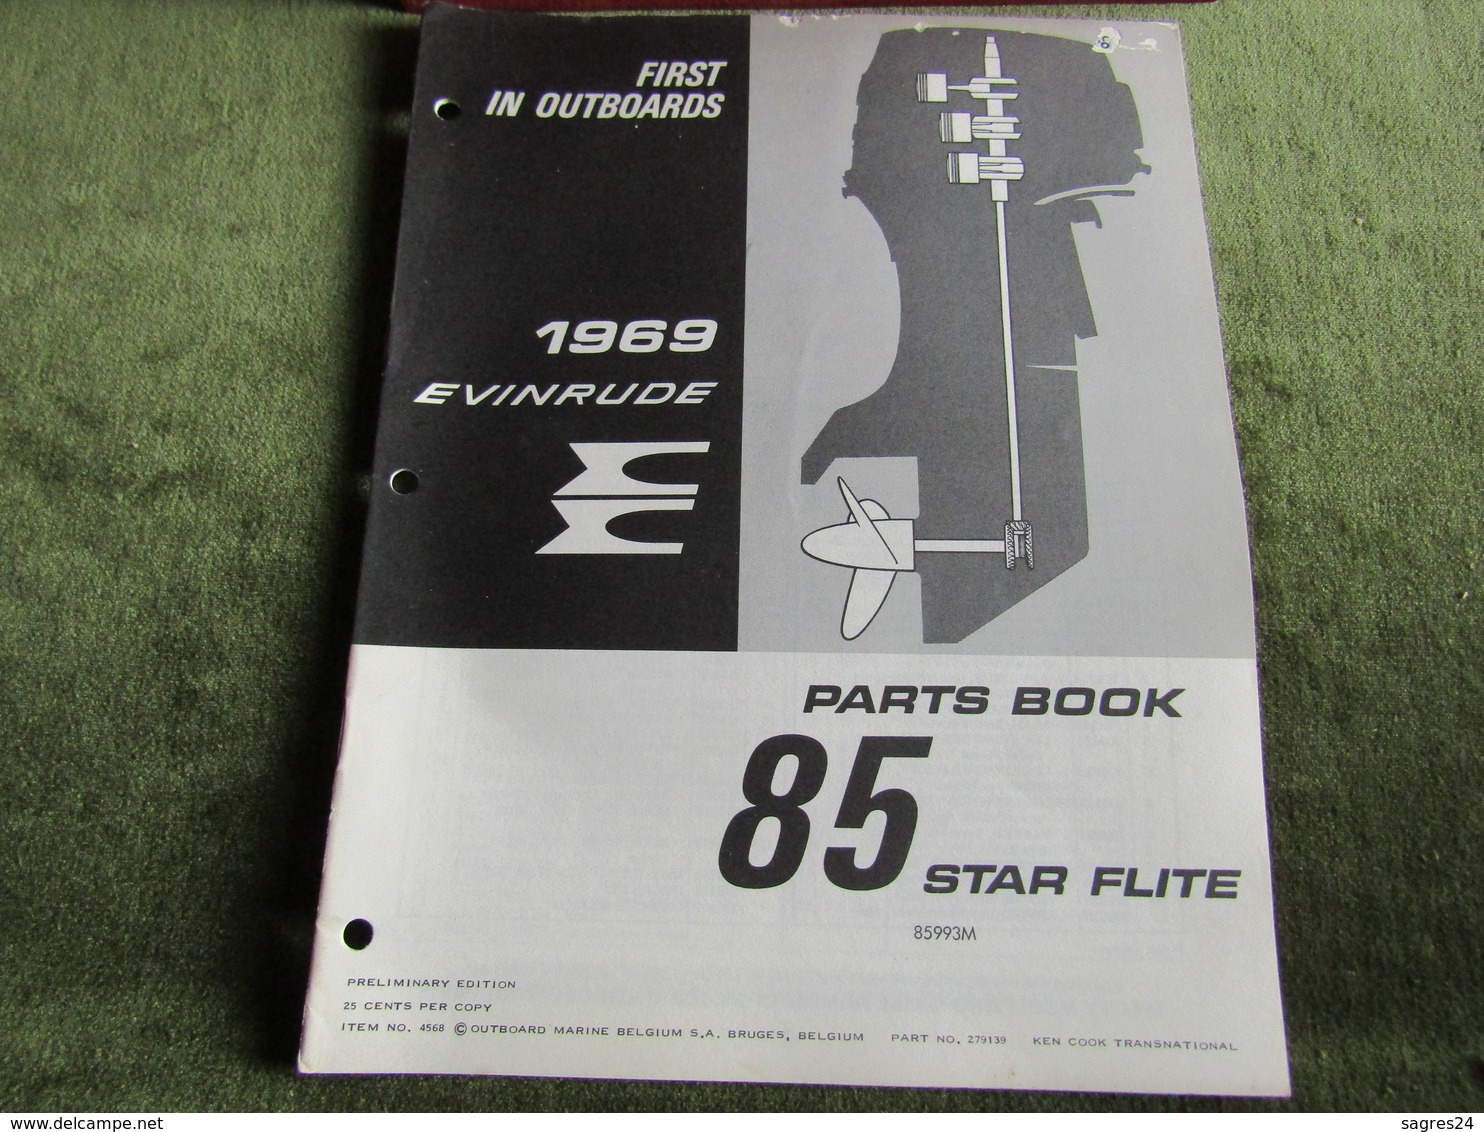 Evinrude Outboard 85 Star Flite Parts Book 1969 - Boats